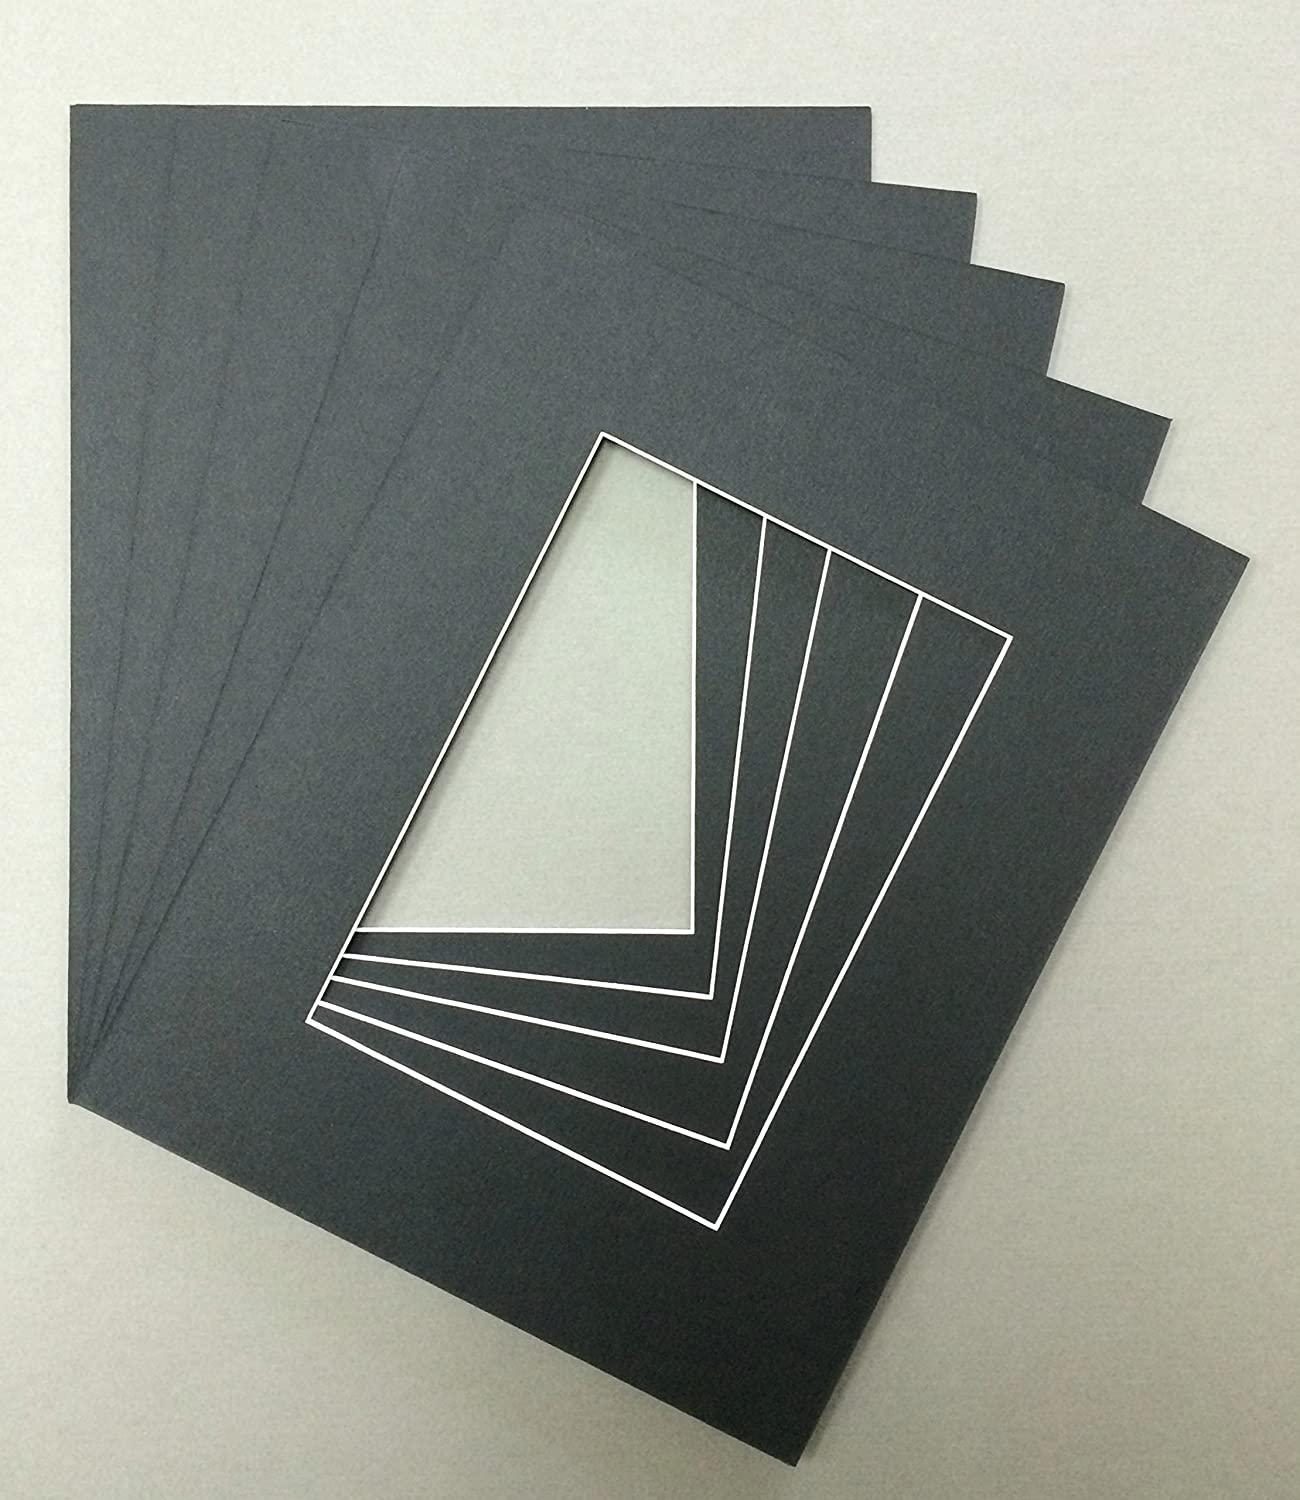 Pack of 5 11x14 Black Picture Mats Bevel Cut for 8x12 Pictures